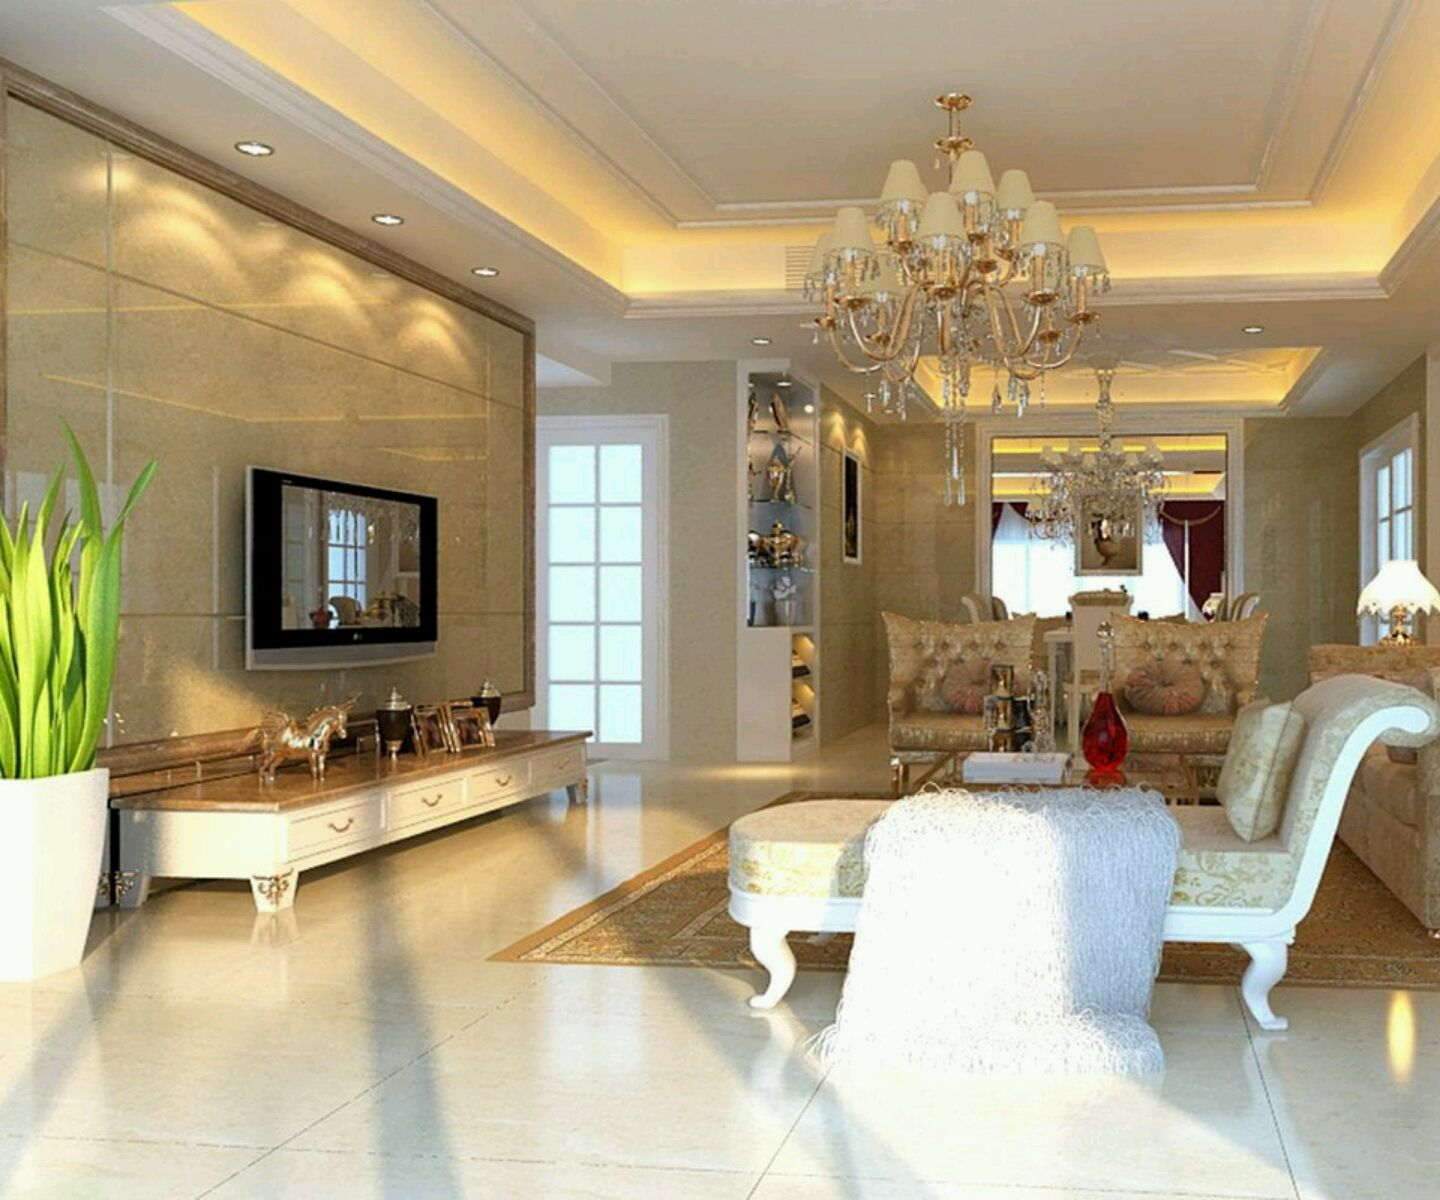 Interior Home Decorating luxury homes interior decoration living room designs ideas. | new